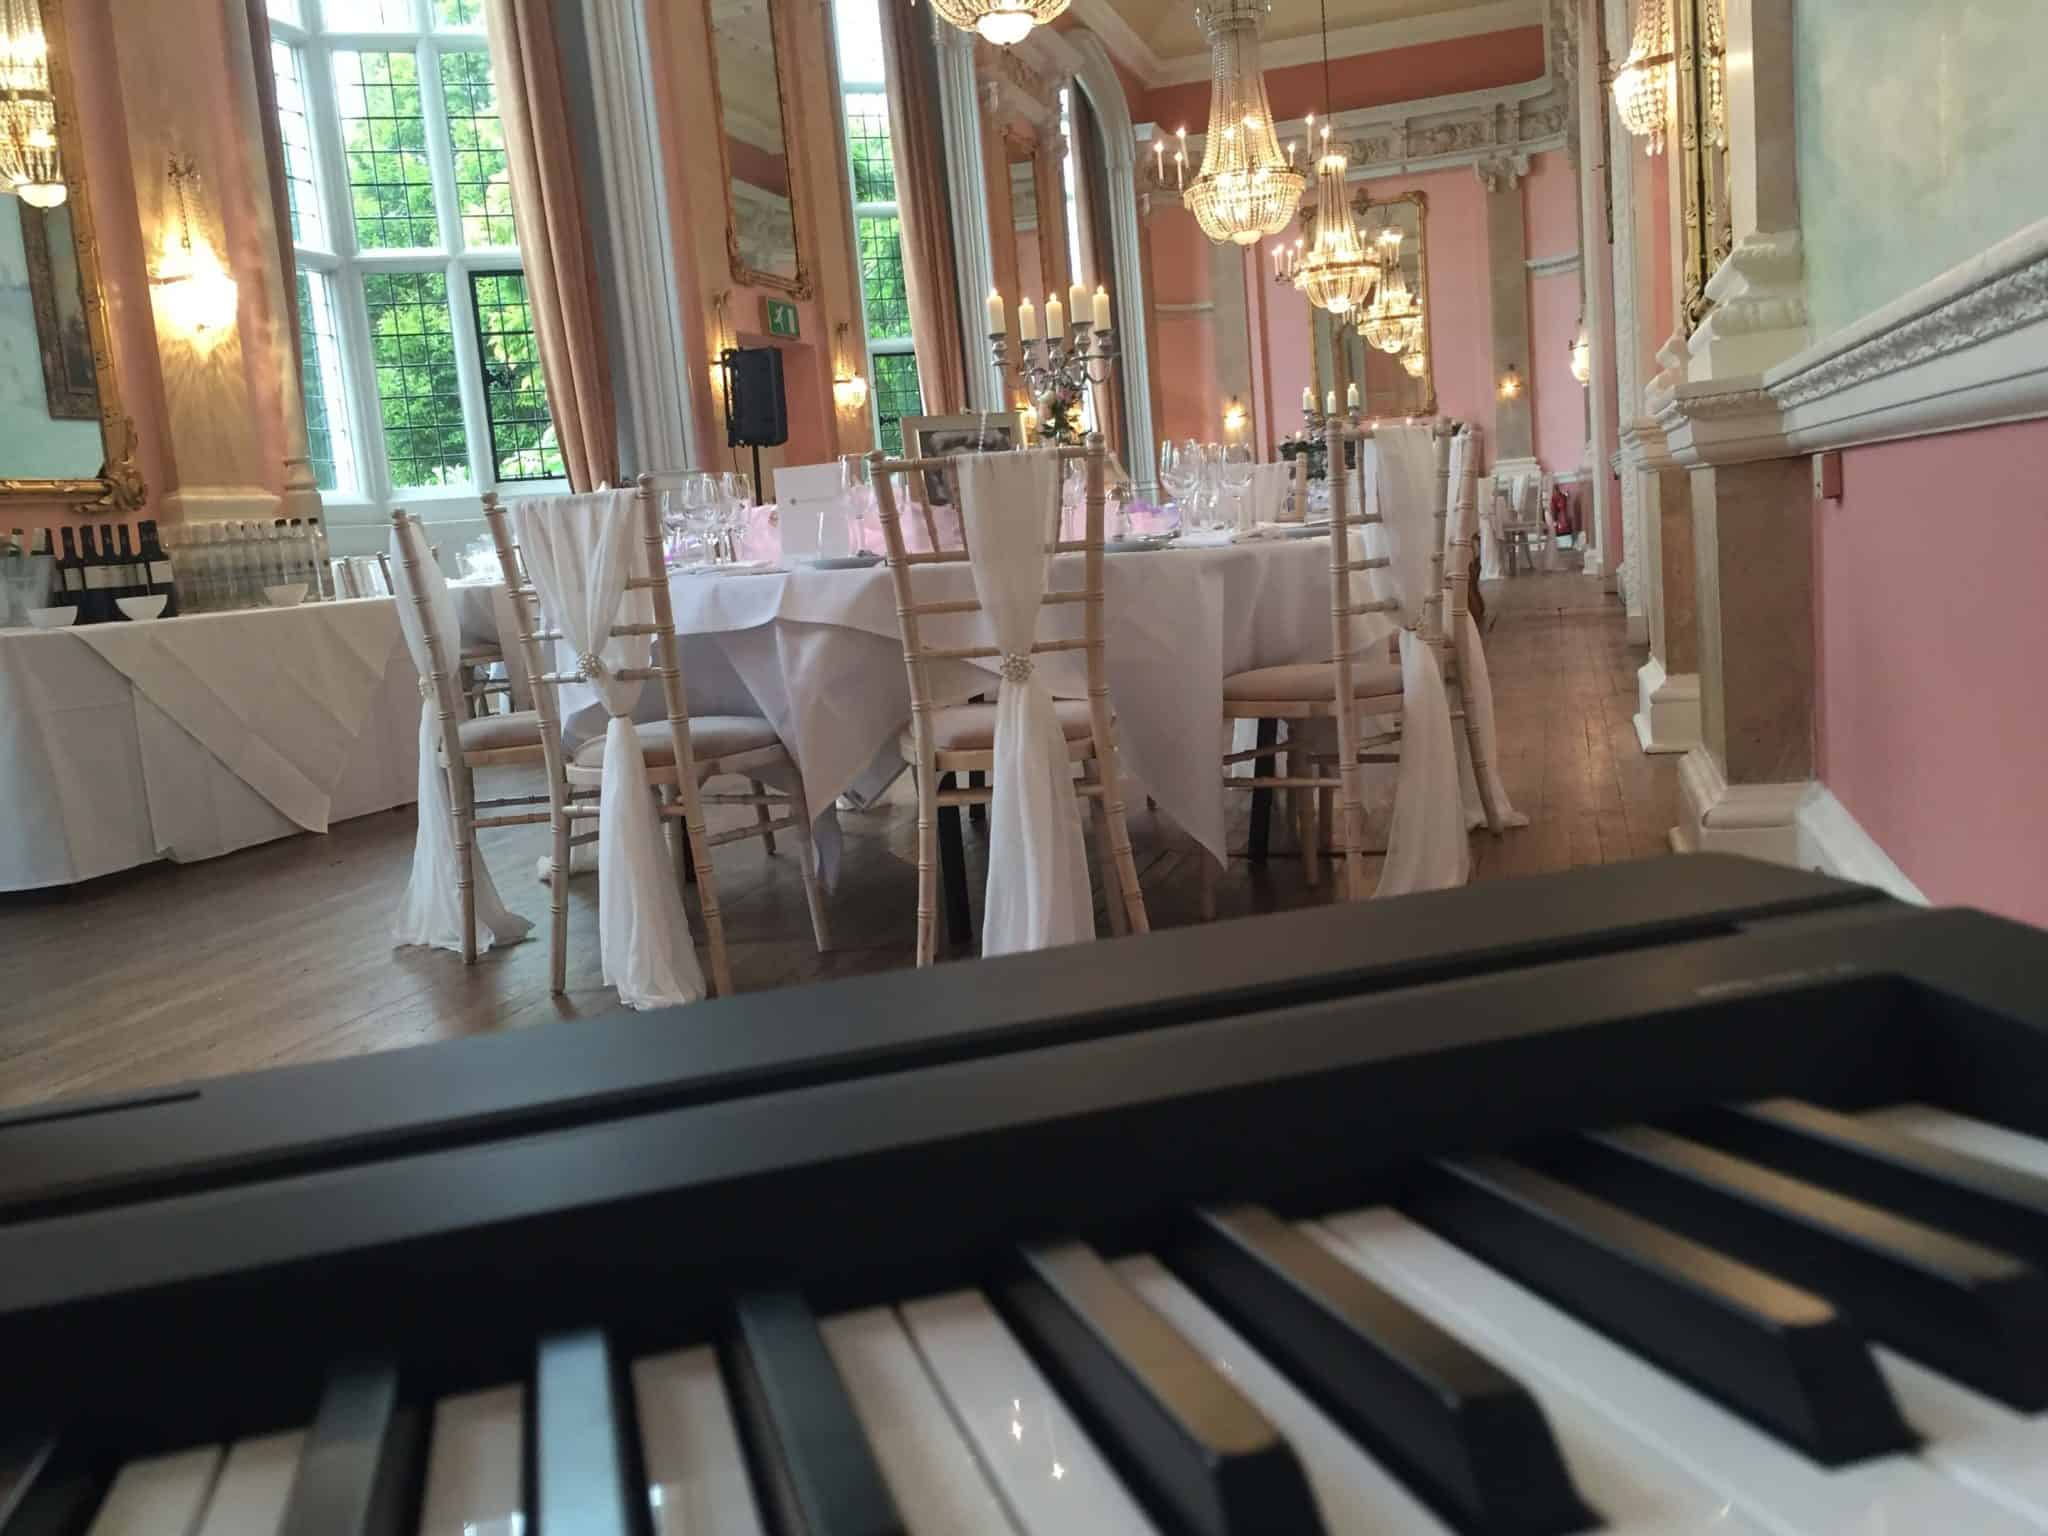 Pianist View